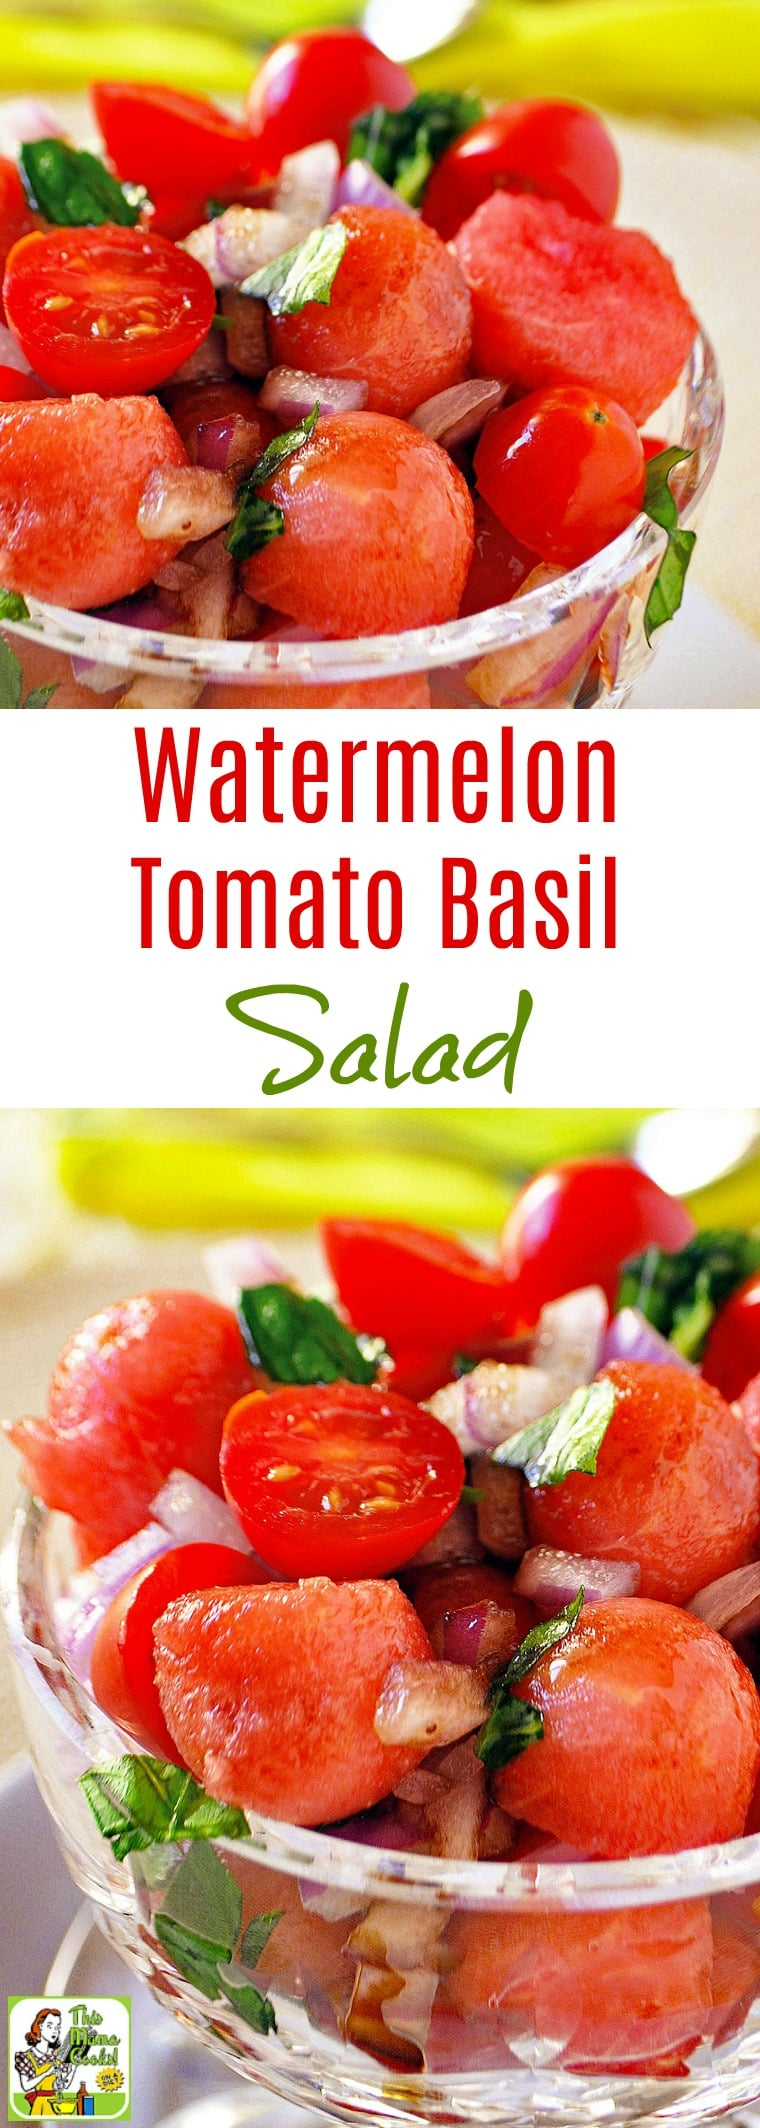 This Easy Watermelon Tomato Basil Salad Recipe Is Ideal For Summer Cookouts Or Potlucks Click